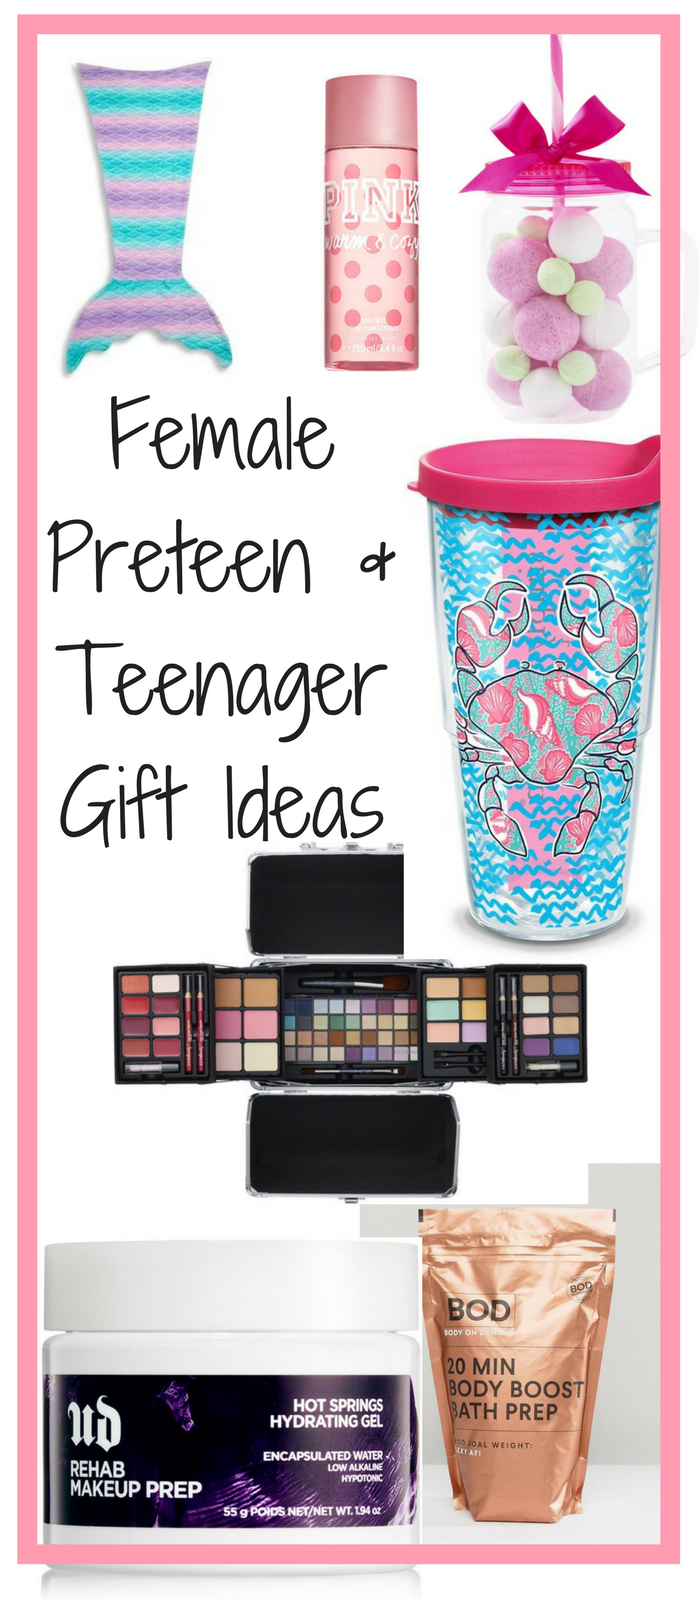 Do you need to find a holiday gift for the teenager in your life? We have the perfect list of Christmas gifts and holiday gifts for any female teenagers that you have on your list. Don't look any further we have a Christmas Gift Round up for you! The holiday gift guides can be found at One Sharp Mama